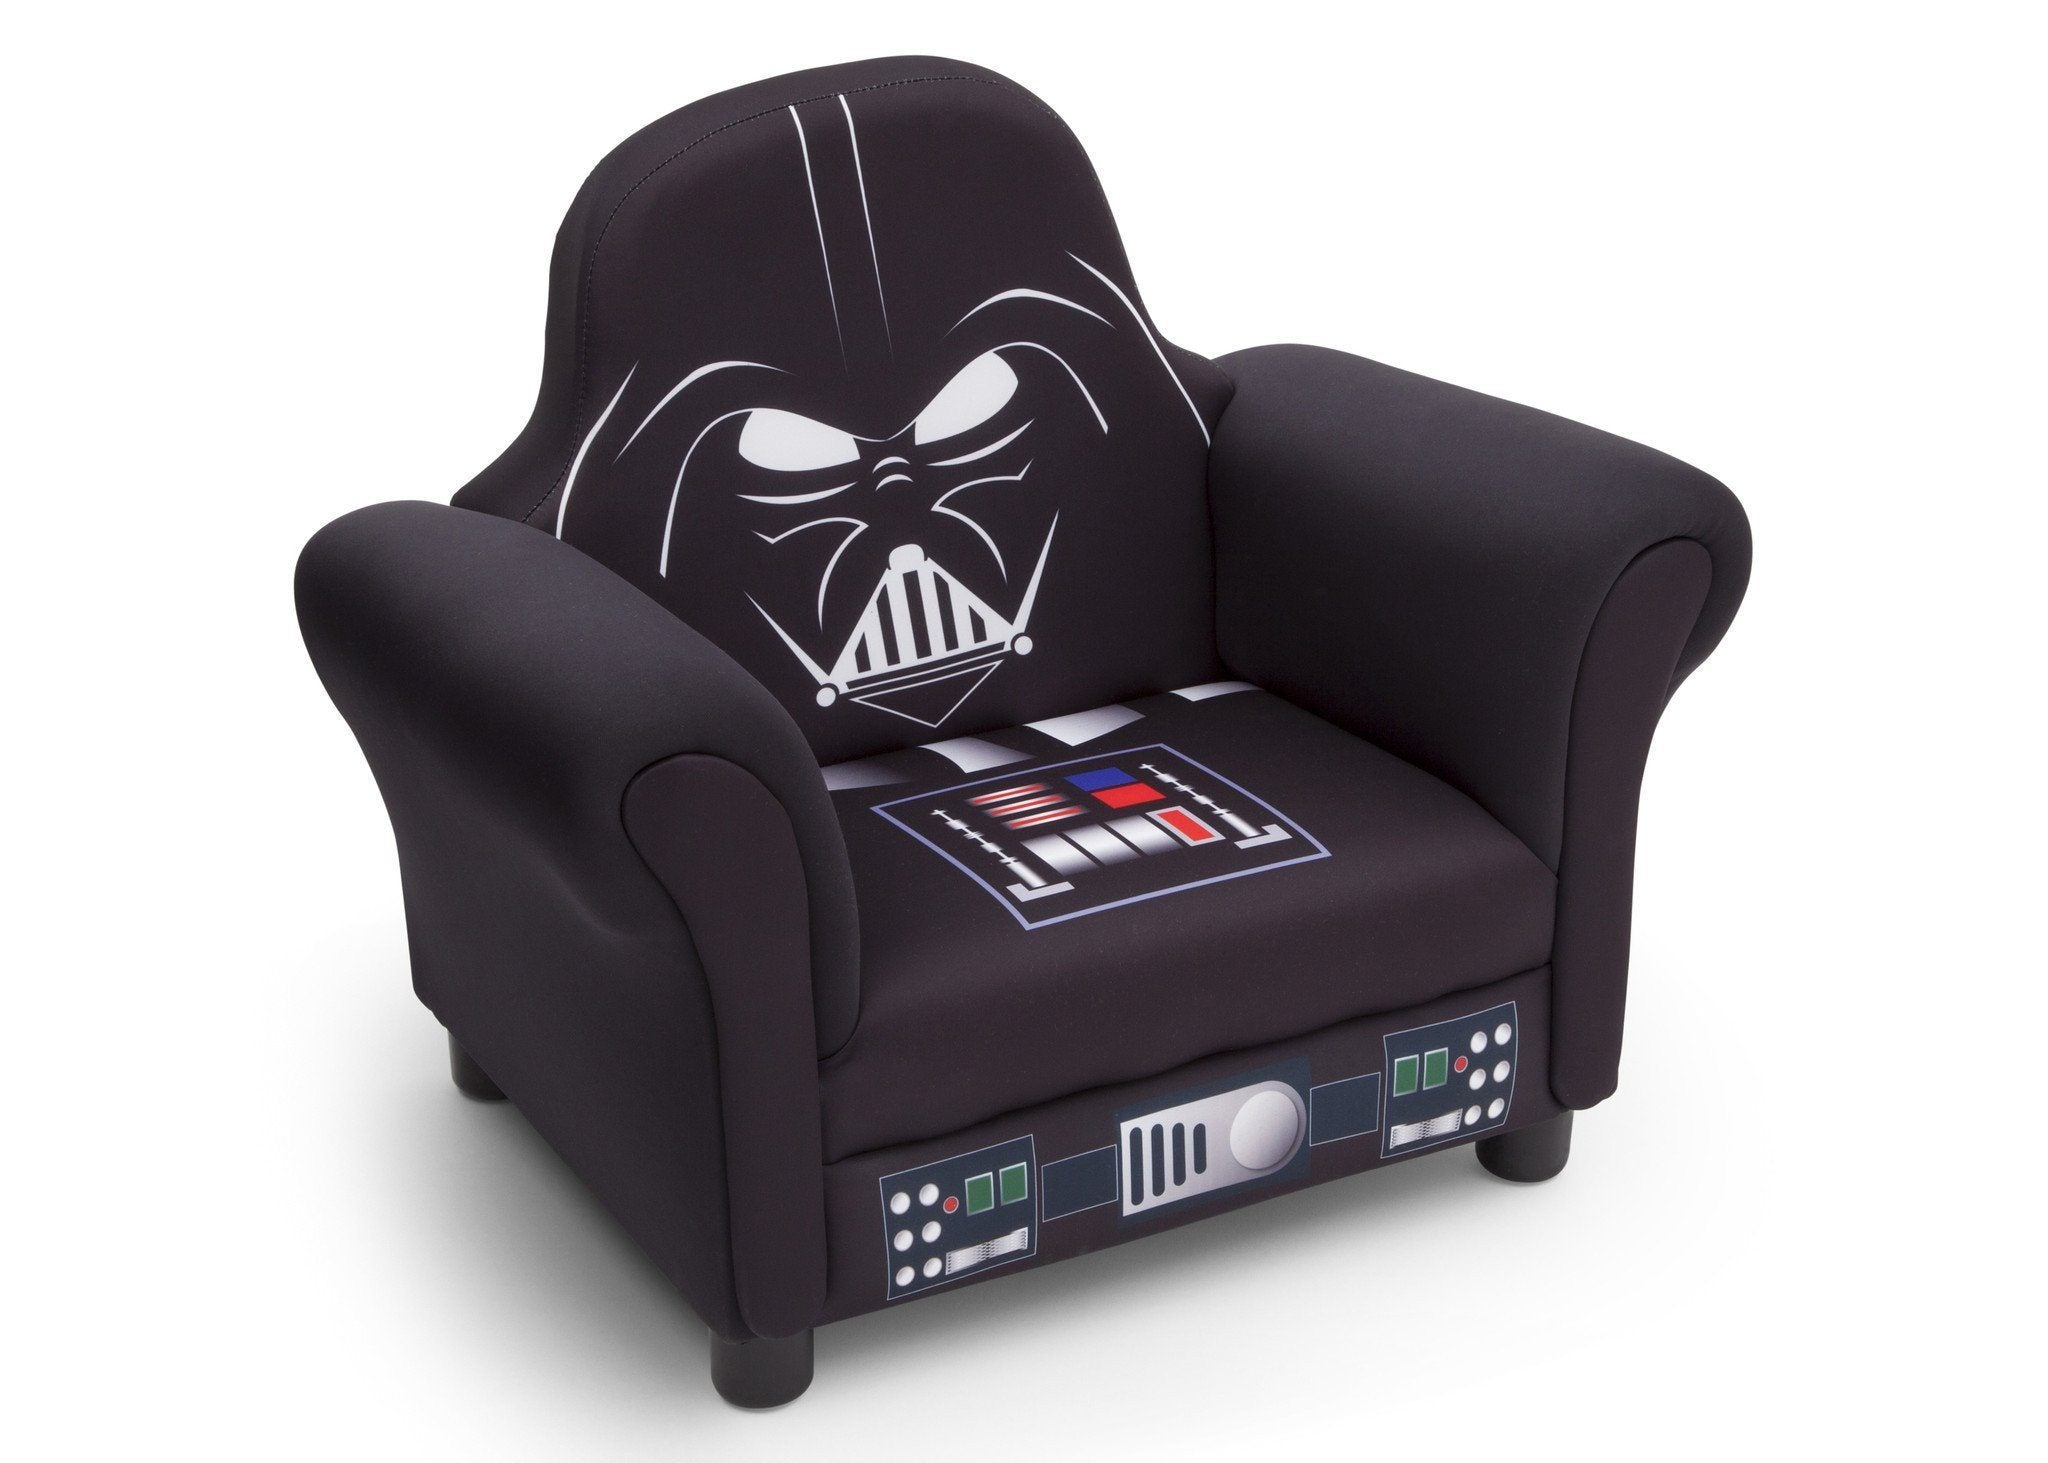 Star Wars Deluxe Upholstered Chair Darth Vader Delta